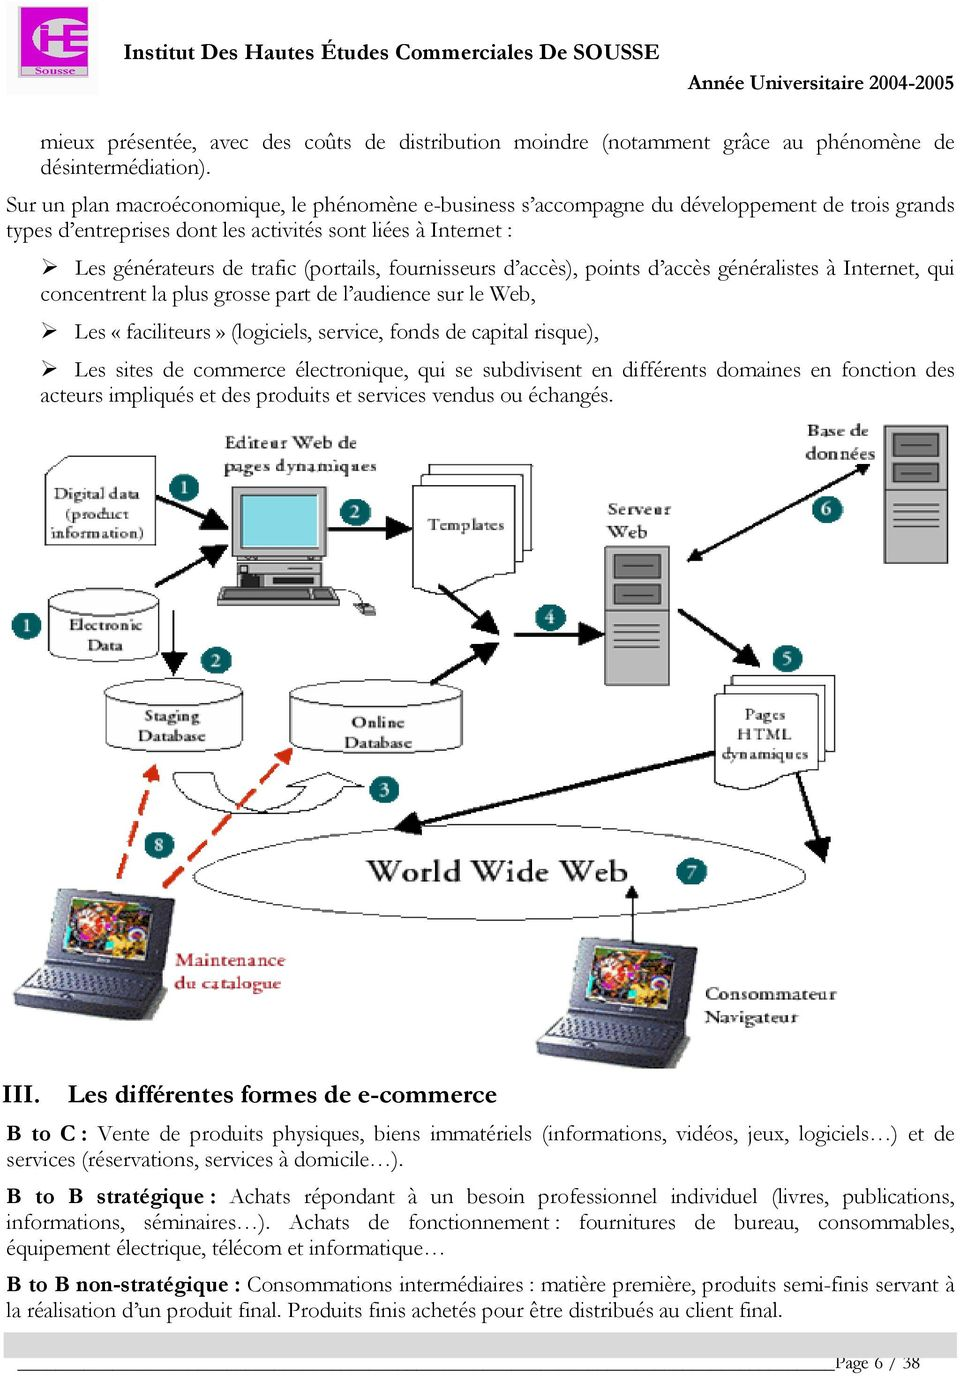 fournisseurs d accès), points d accès généralistes à Internet, qui concentrent la plus grosse part de l audience sur le Web, Les «faciliteurs» (logiciels, service, fonds de capital risque), Les sites